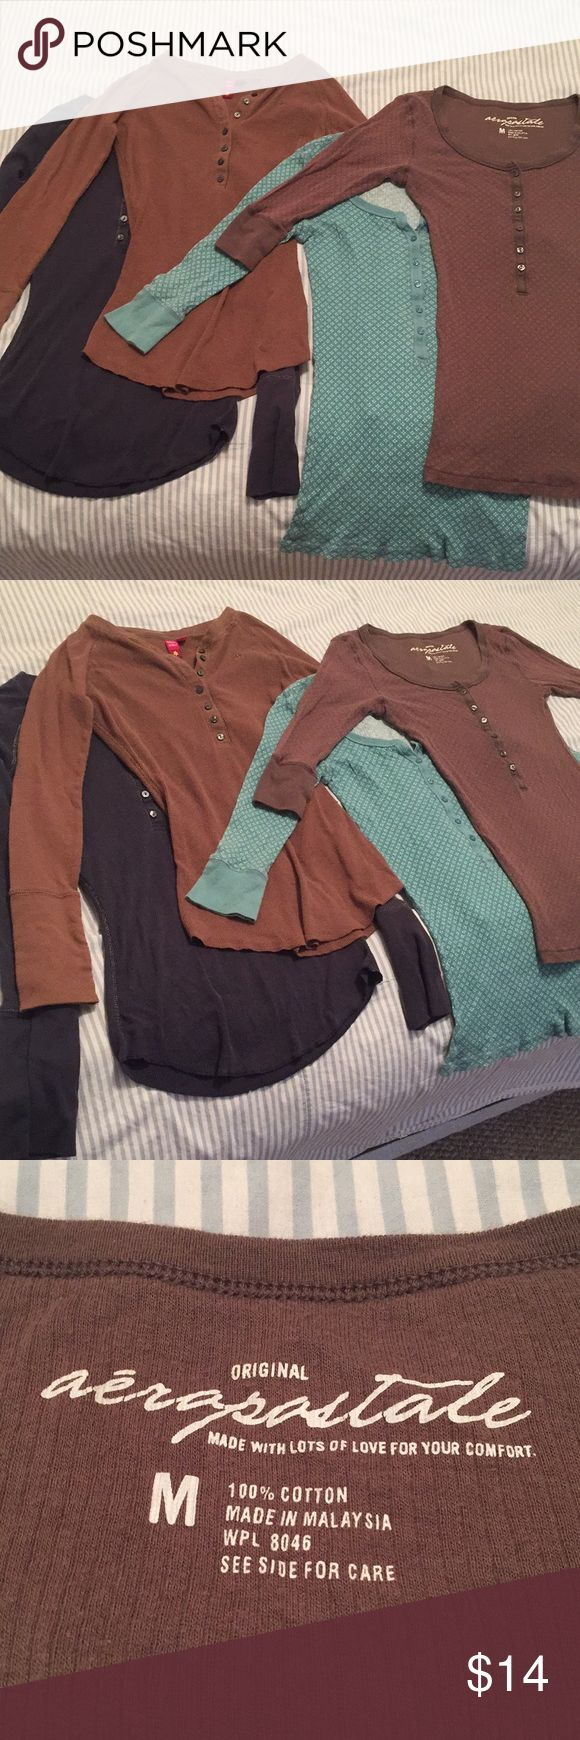 BUNDLE 🌸 4 Juniors Long Sleeve Soft Cotton Tops Two from Aeropostale in a light blue with white floral pattern and a brown with the same red floral pattern, and two from SO both plain in navy blue and brown, all four in juniors size medium. Excellent condition, extremely soft long sleeve shirts perfect for going back to school after winter break.   All bundles of 2+ items are automatically discounted by 20%. Offers welcome! Thank you for shopping from my closet ☺️ Aeropostale Tops Tees…